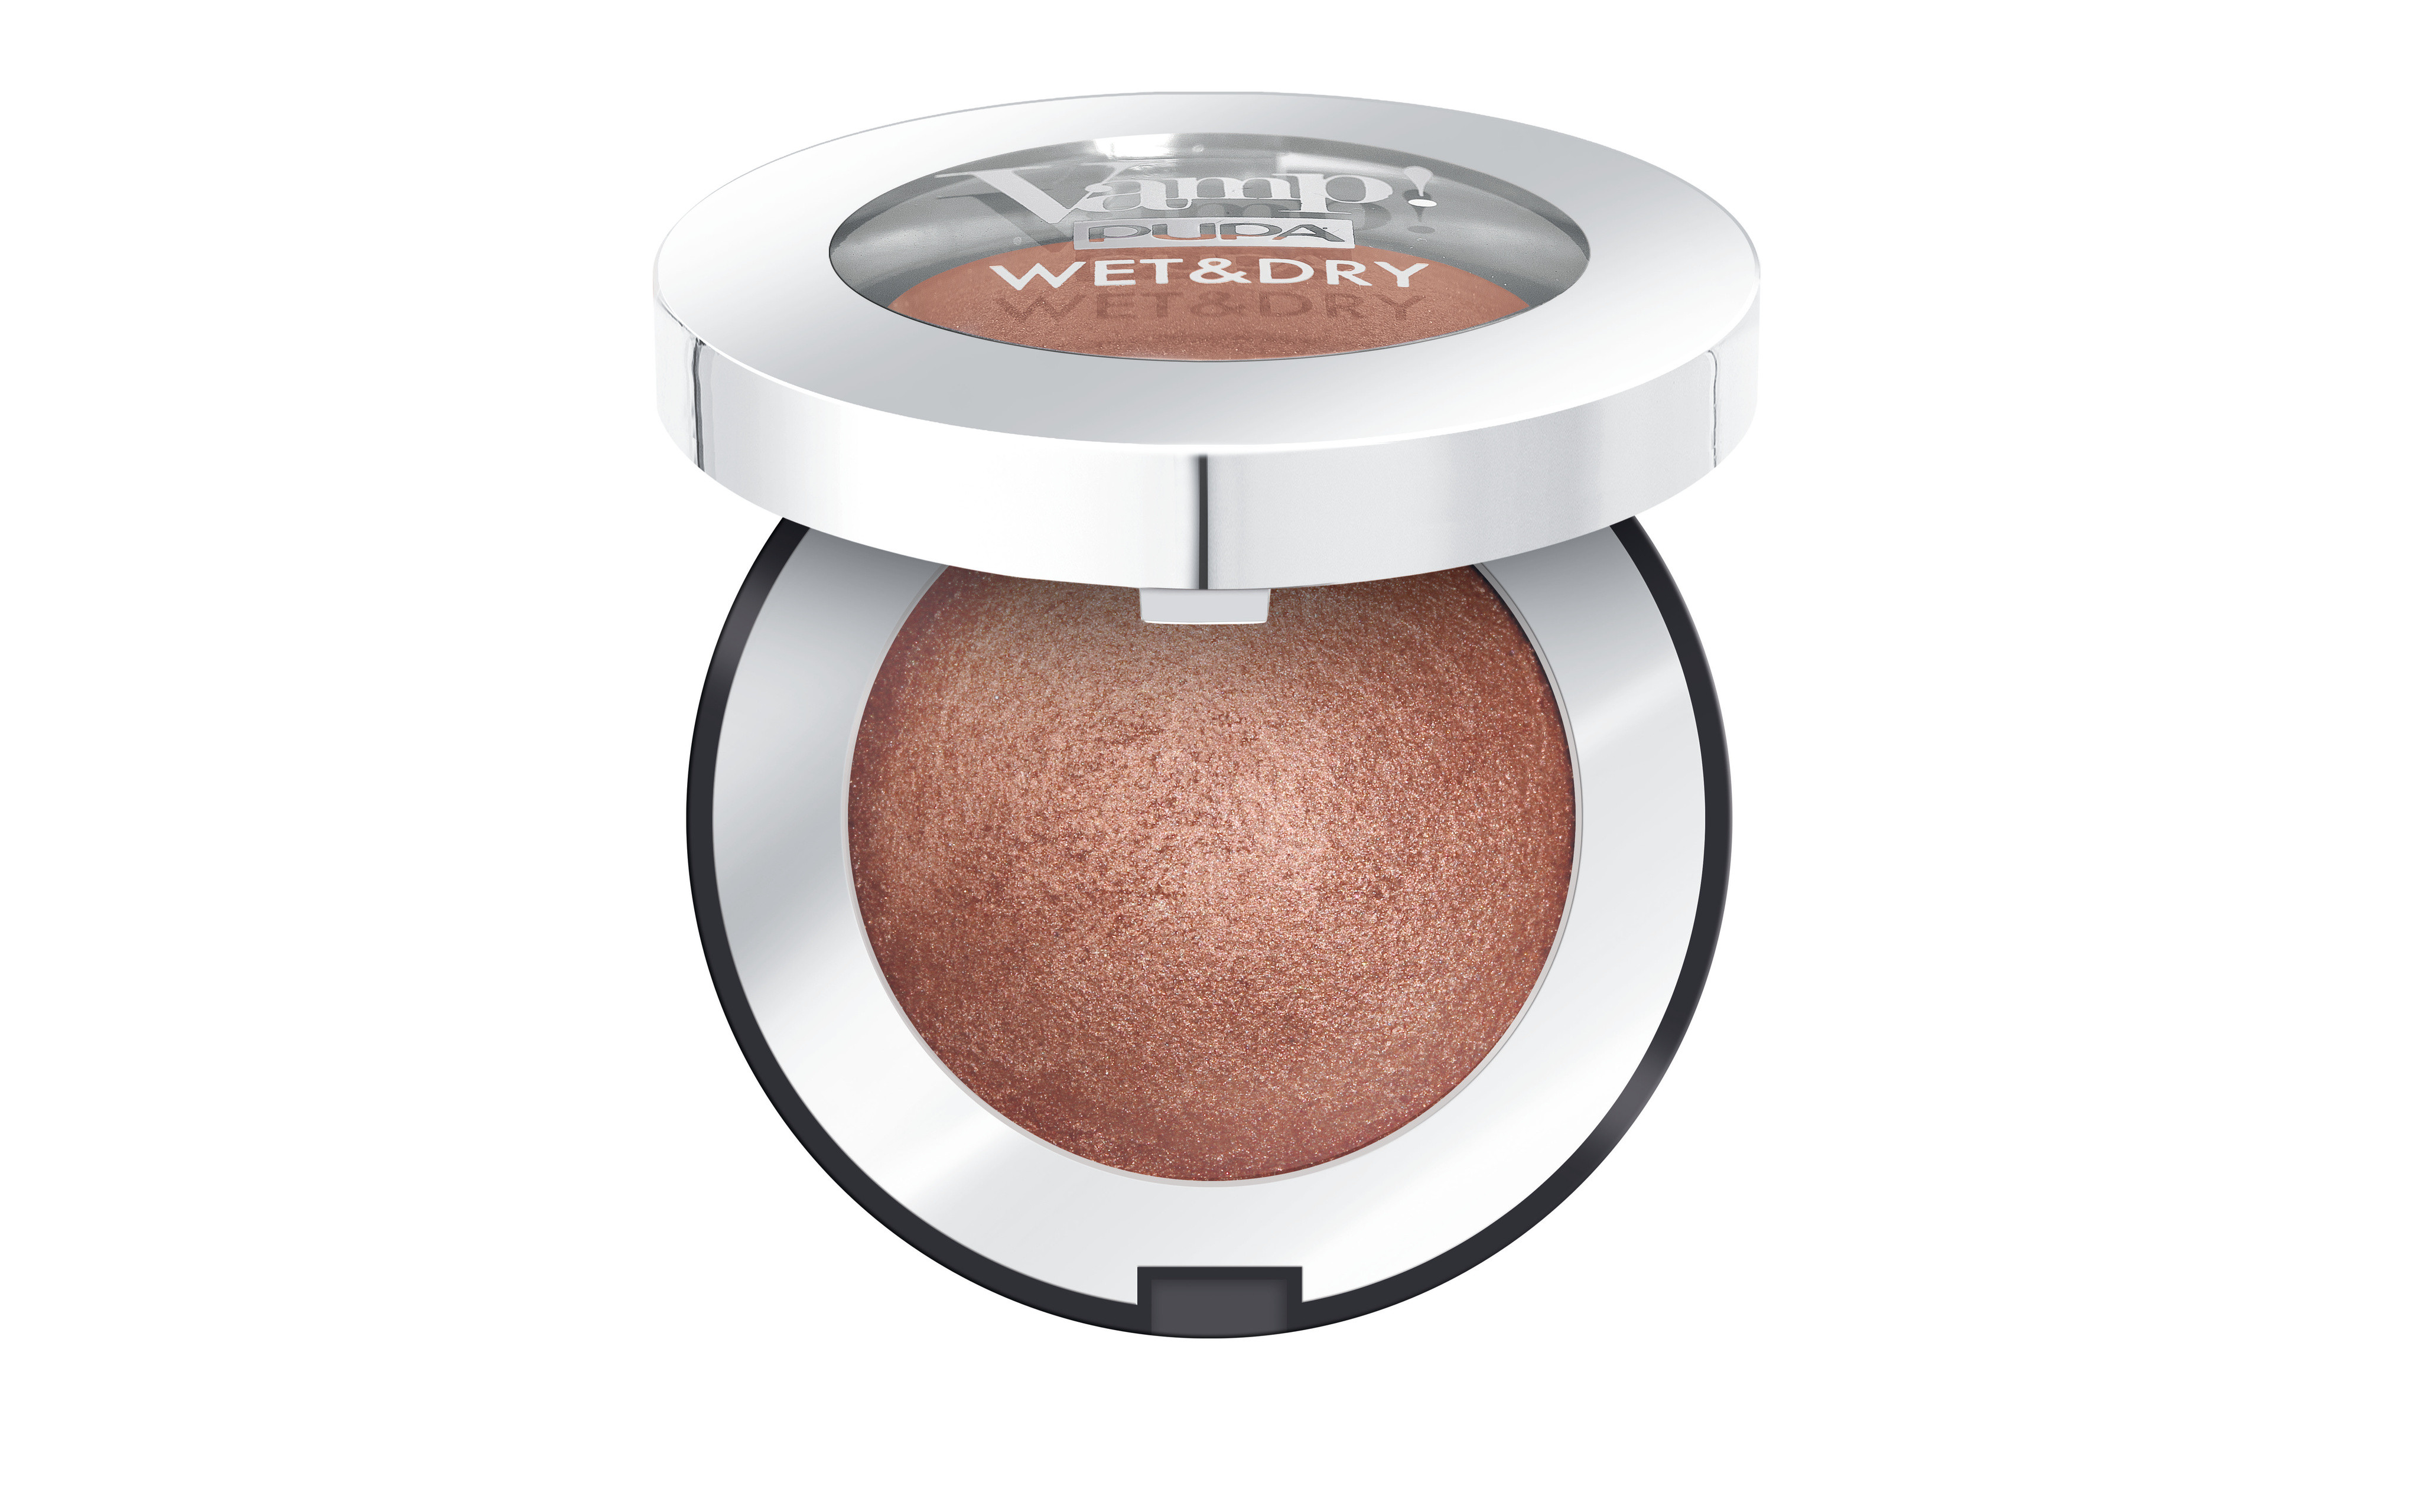 Pupa vamp! Wet&dry ombretto - 104, 104HOT COPPER, large image number 0